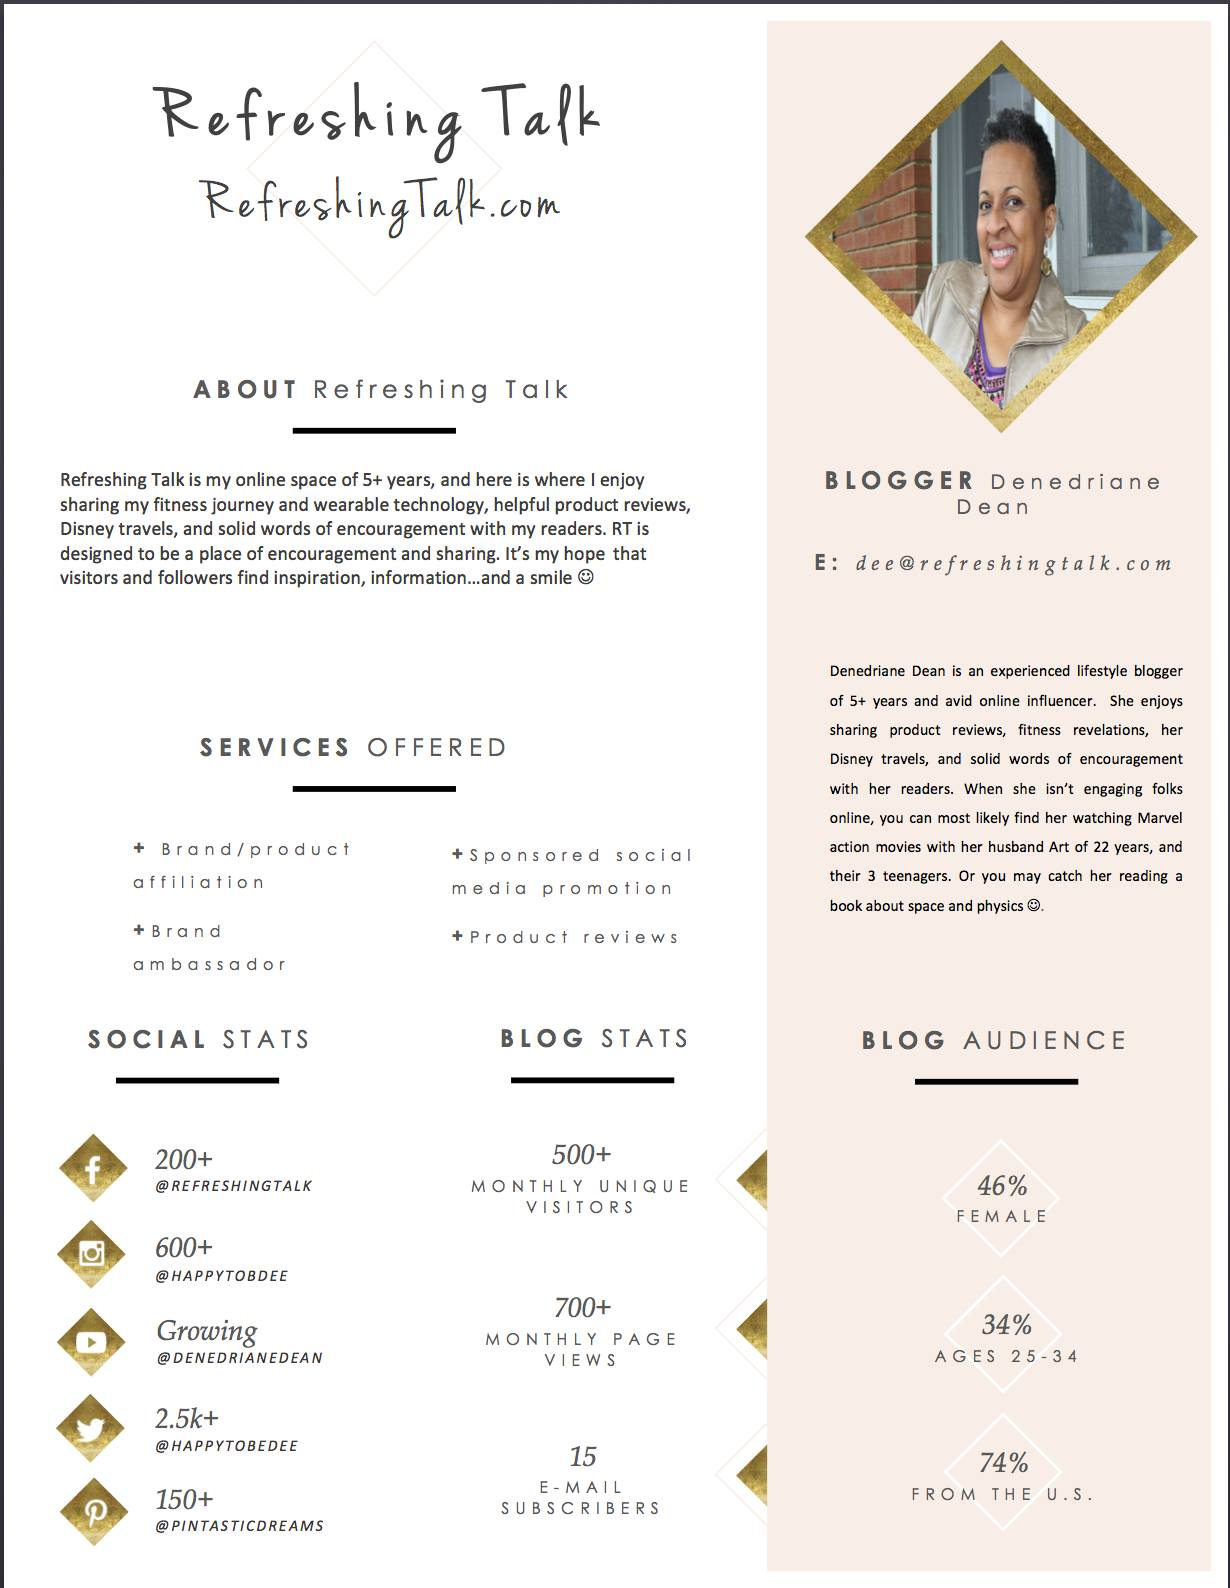 One Page Media Kit Samples For Bloggers And Influencers